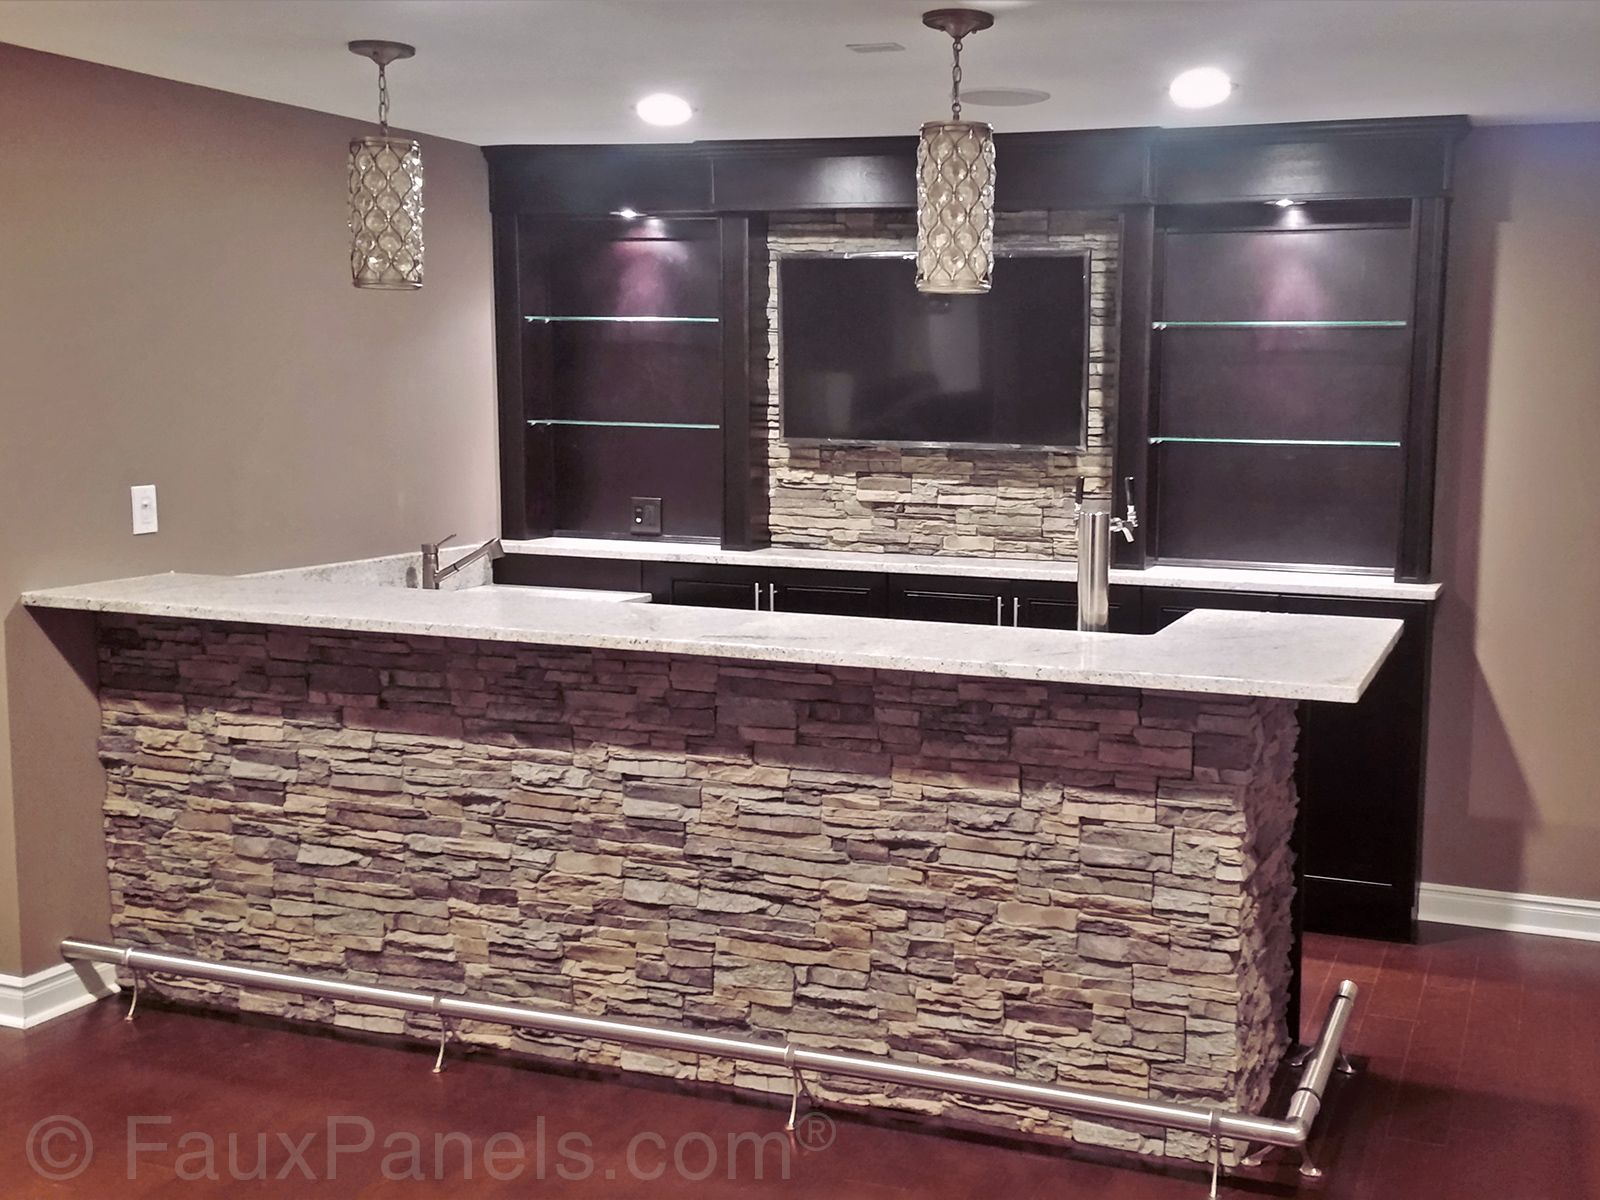 Basement Bar Design Ideas pretty basement wet bars image gallery in basement contemporary design ideas with pretty basement wet bar Home Bar Pictures Design Ideas For Your Home Bar Plans